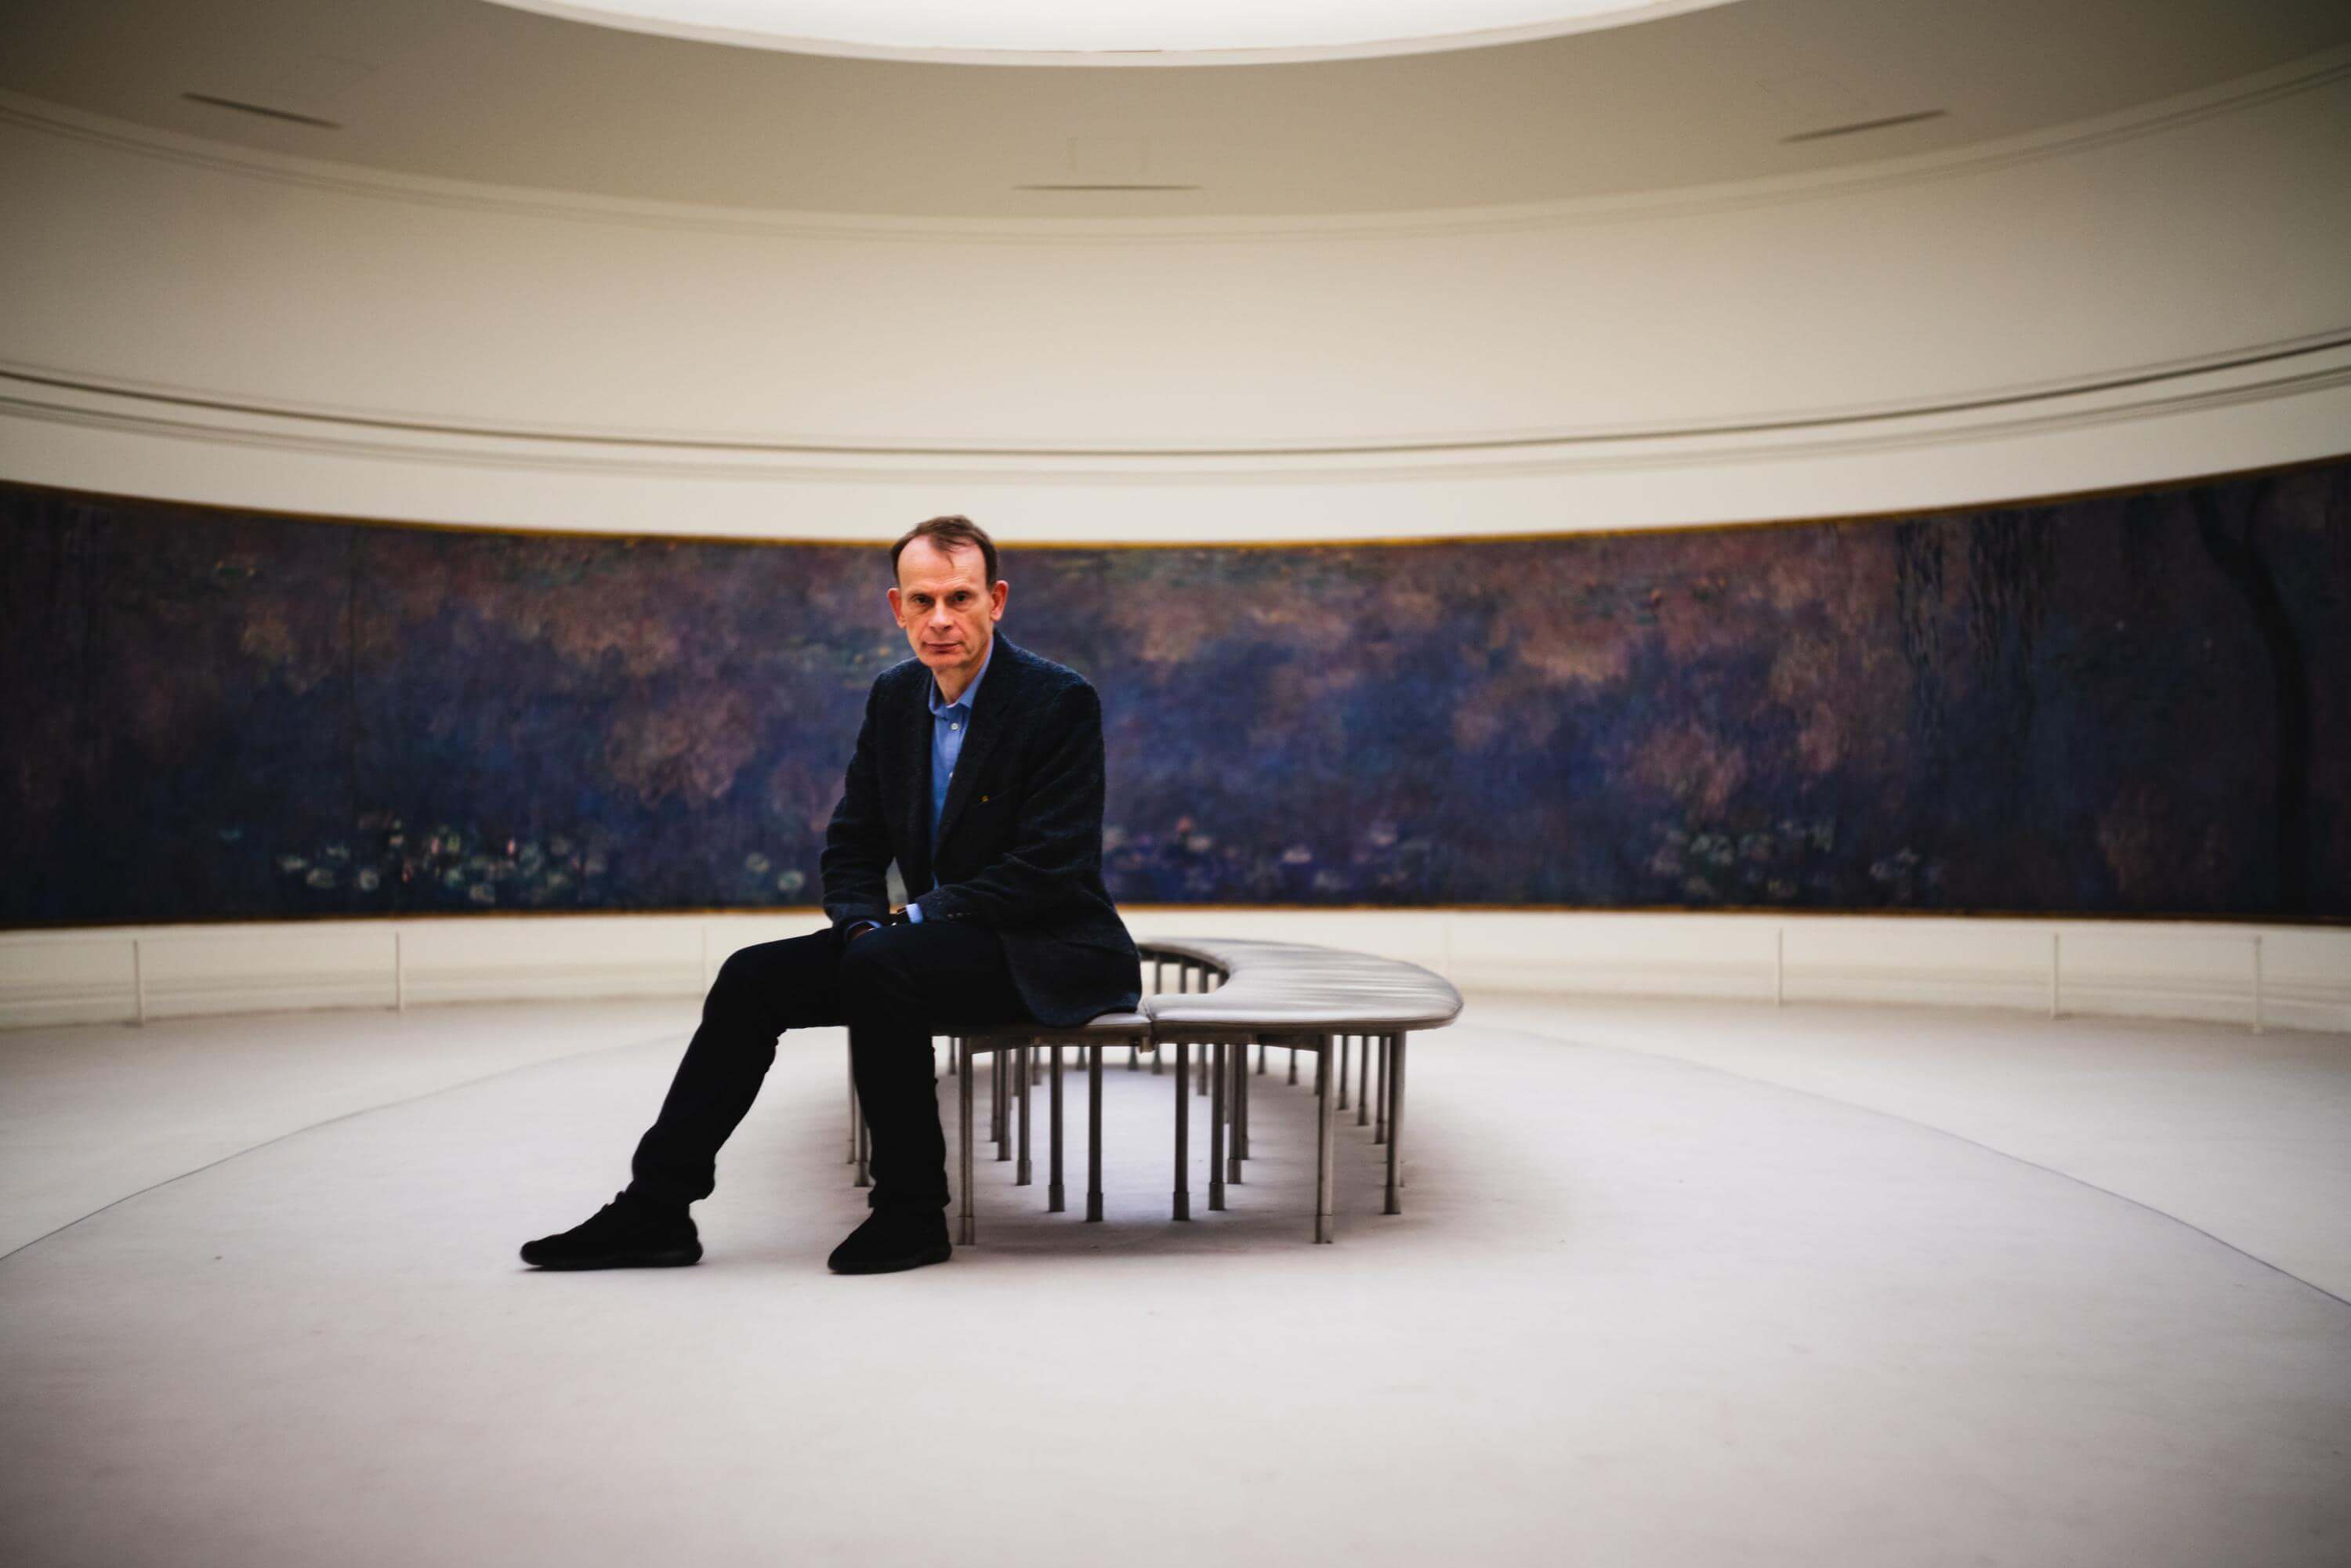 andrew marr sat in a gallery